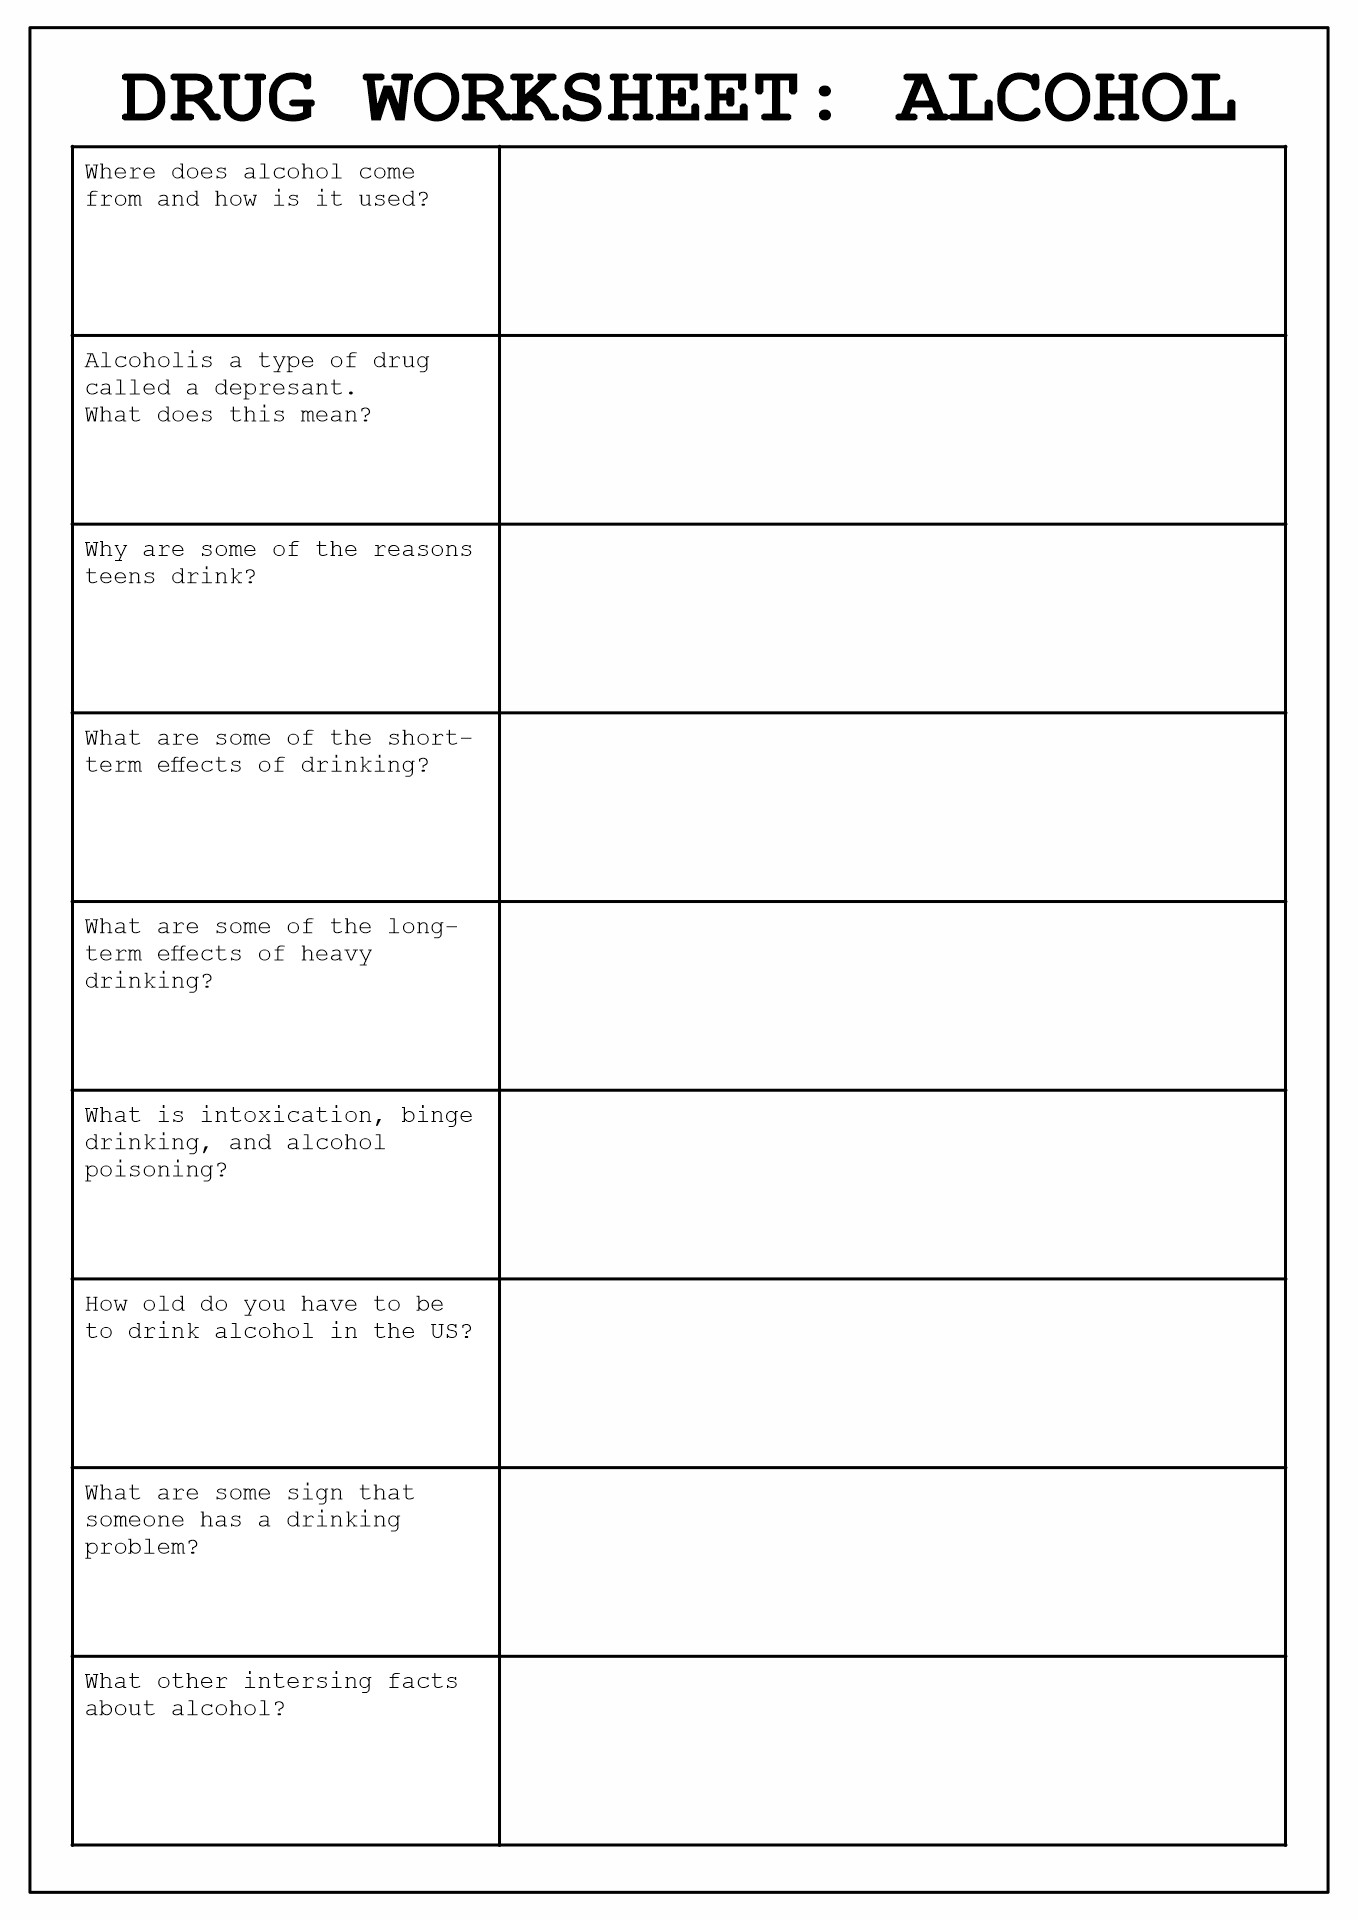 8 Best Images Of Drug Addiction Worksheets Printable